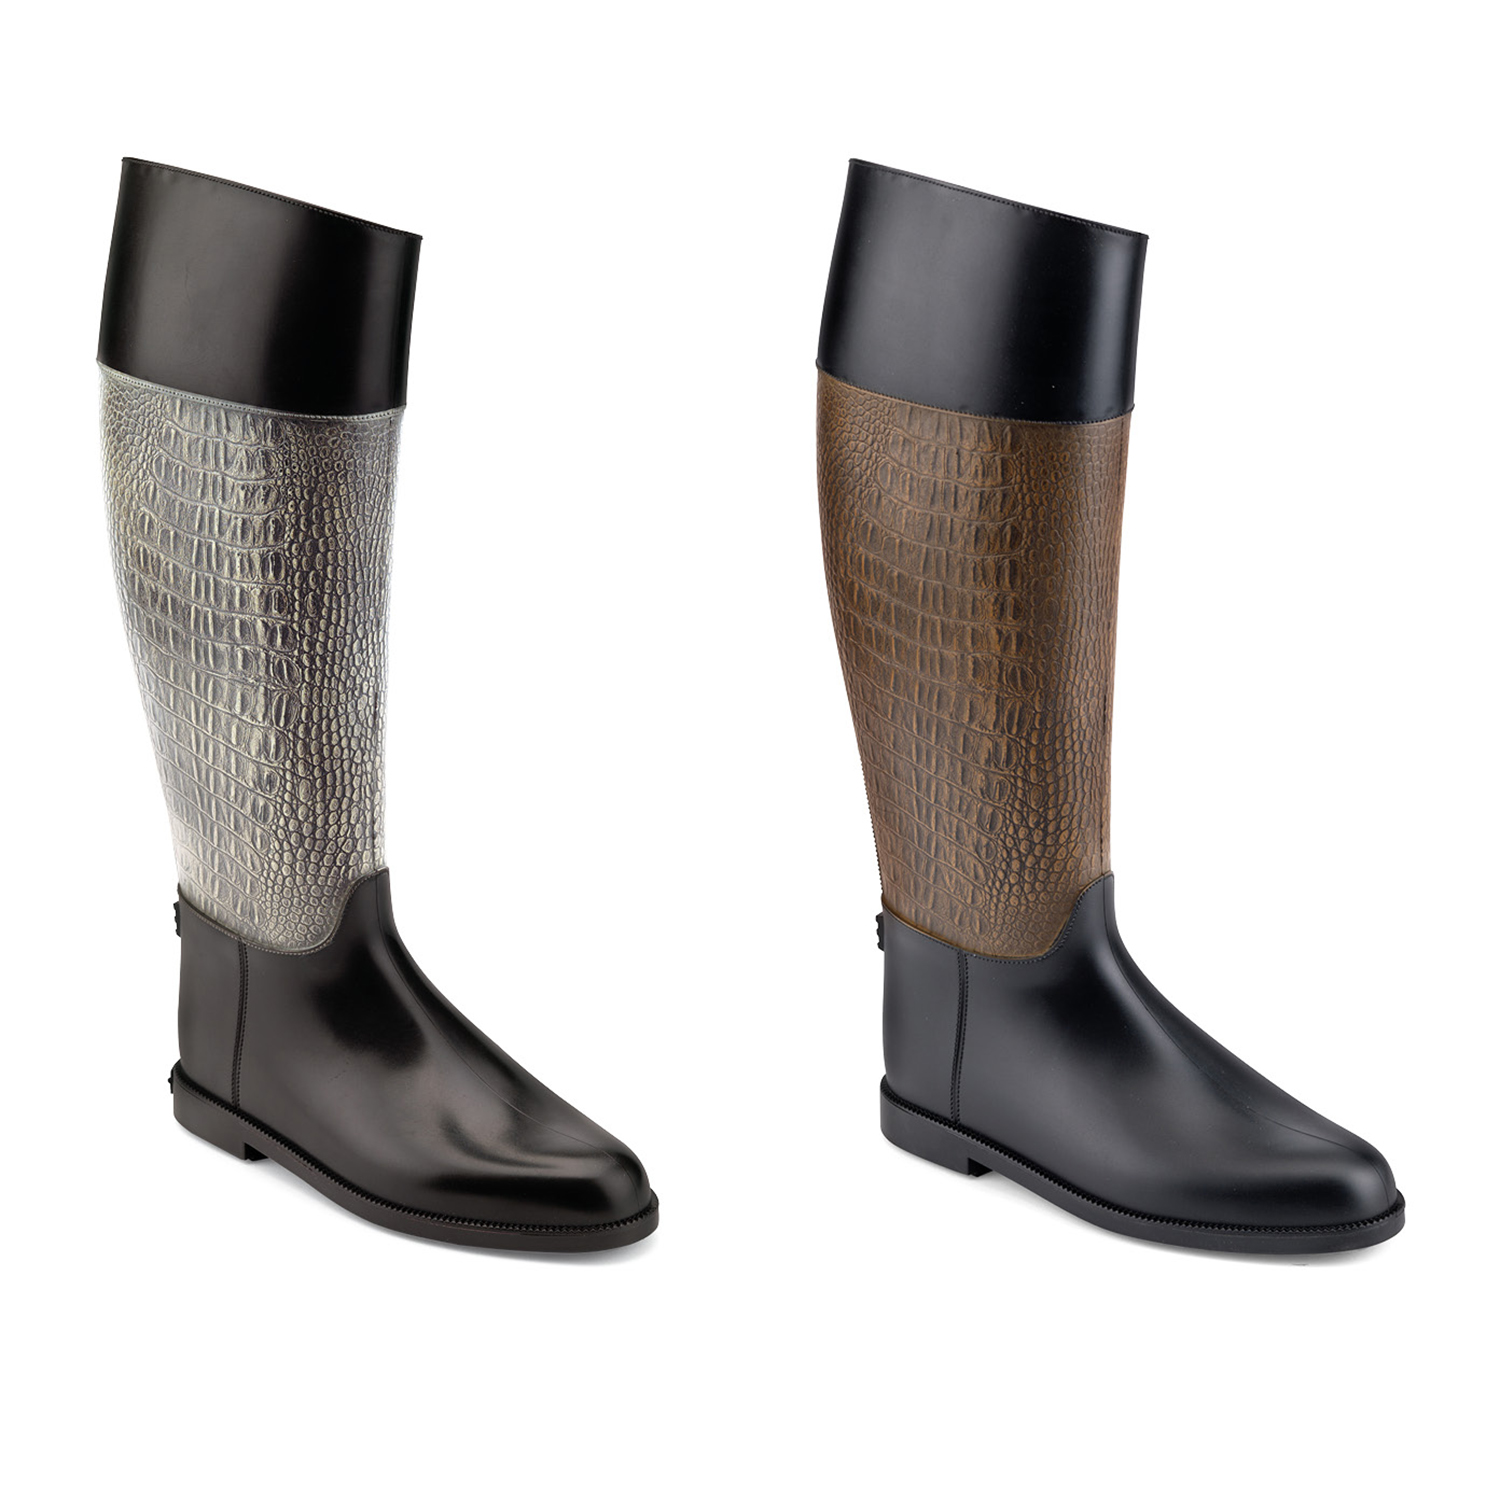 Colours and effect on pvc Coloured varnishing and antique brush finish enhancing the crocodile print on the pvc Riding boot model